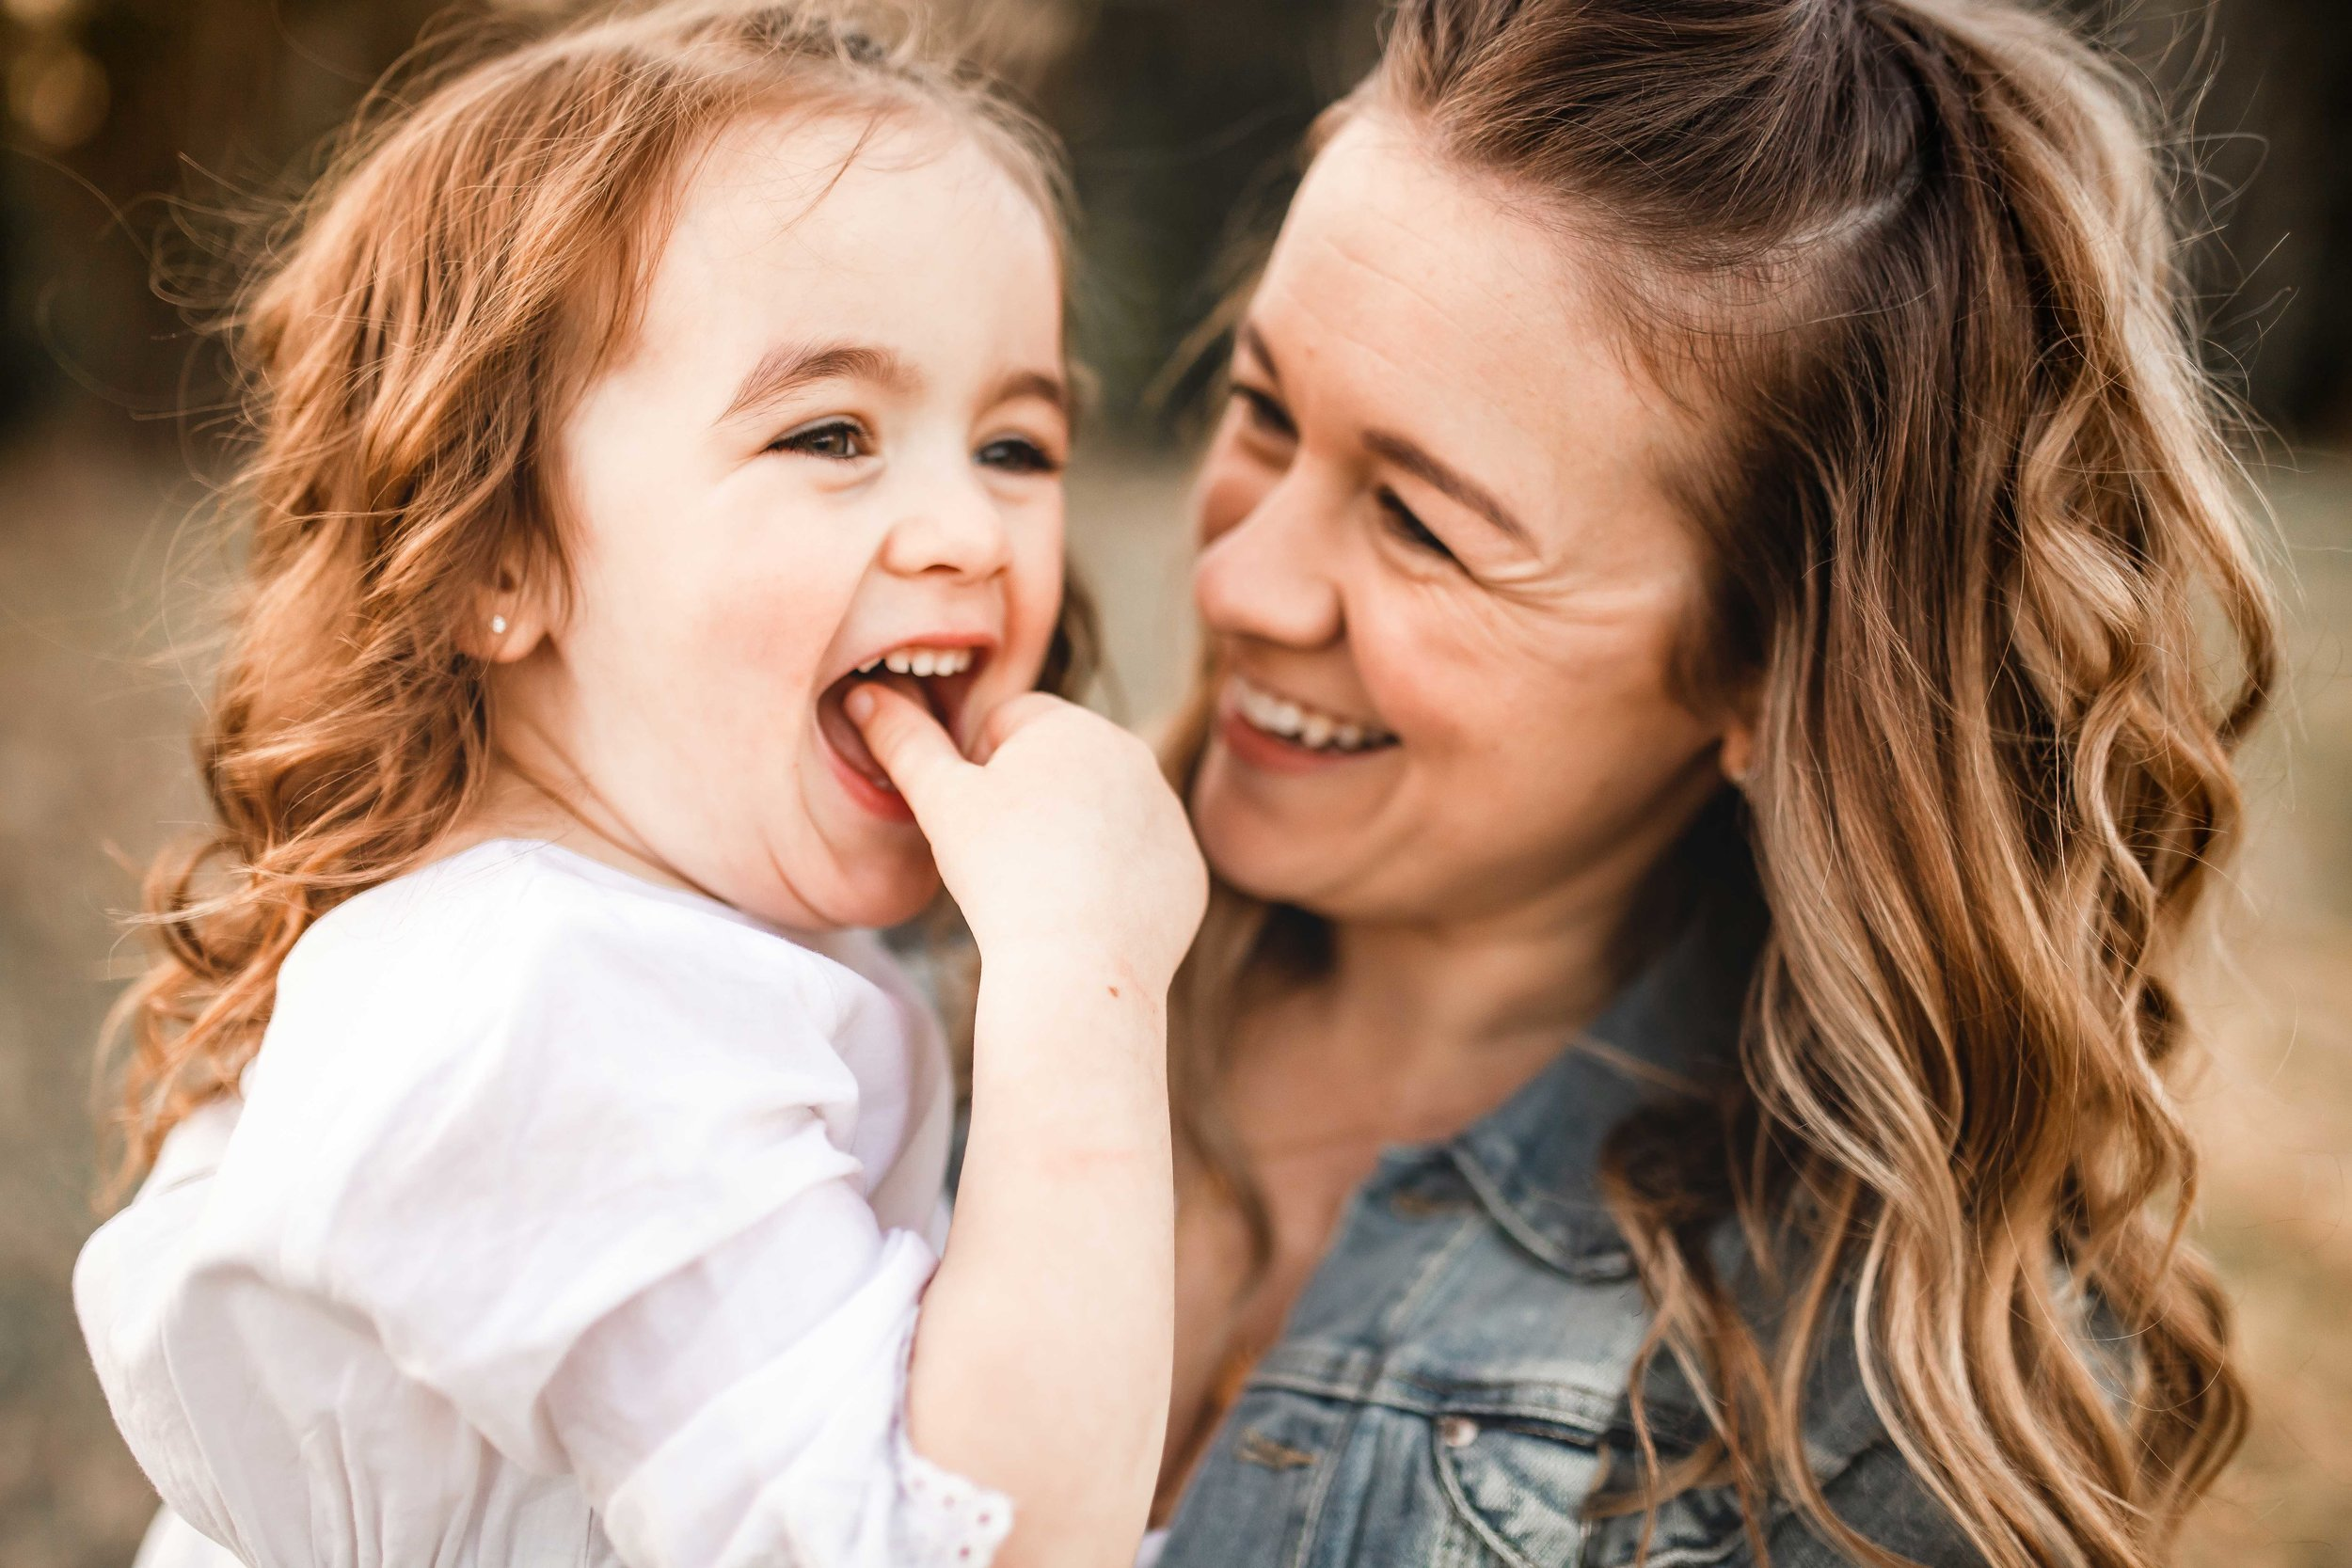 Amy-D-Photography--Family-Photography--Mom-and-Daughter-Session--Mothers-Day-Session--Mom-Photos--Family-Photos--Mom-and-Children-Session--Golden-Hour-Session-110.jpg